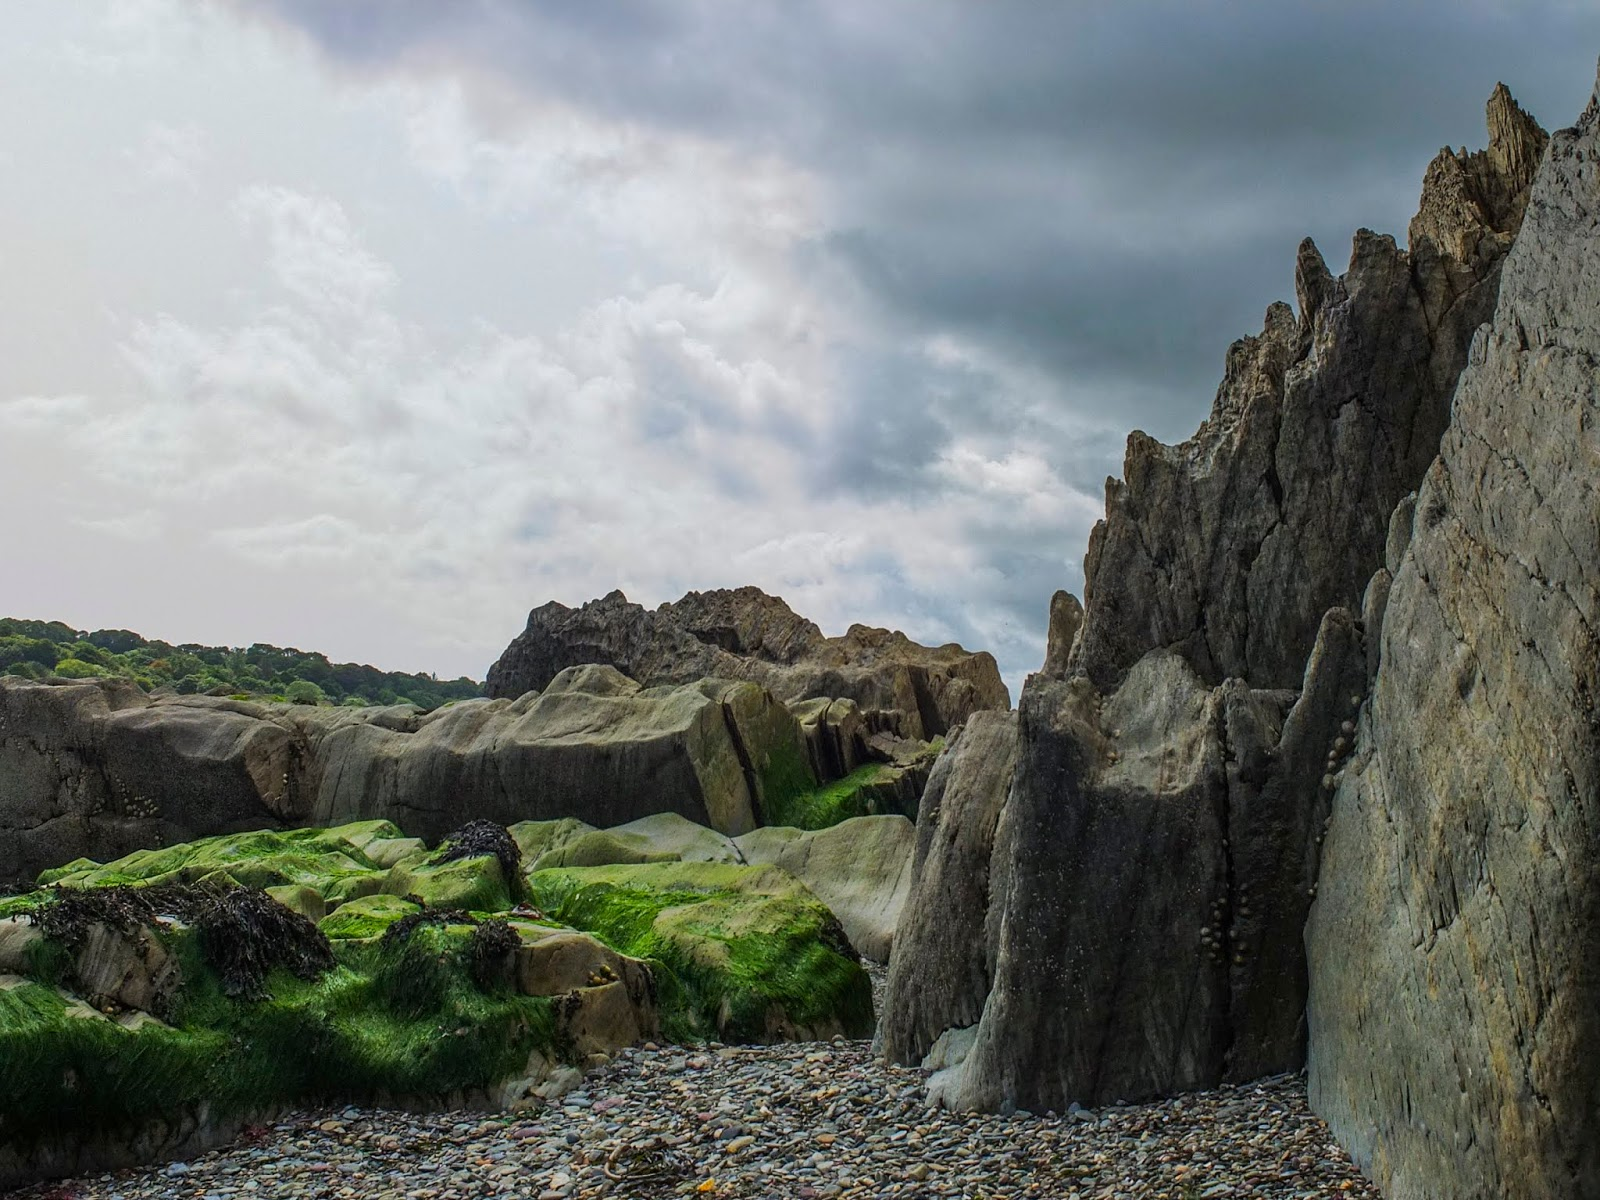 Jagged rocks on the beach in Fountainstown, County Cork.